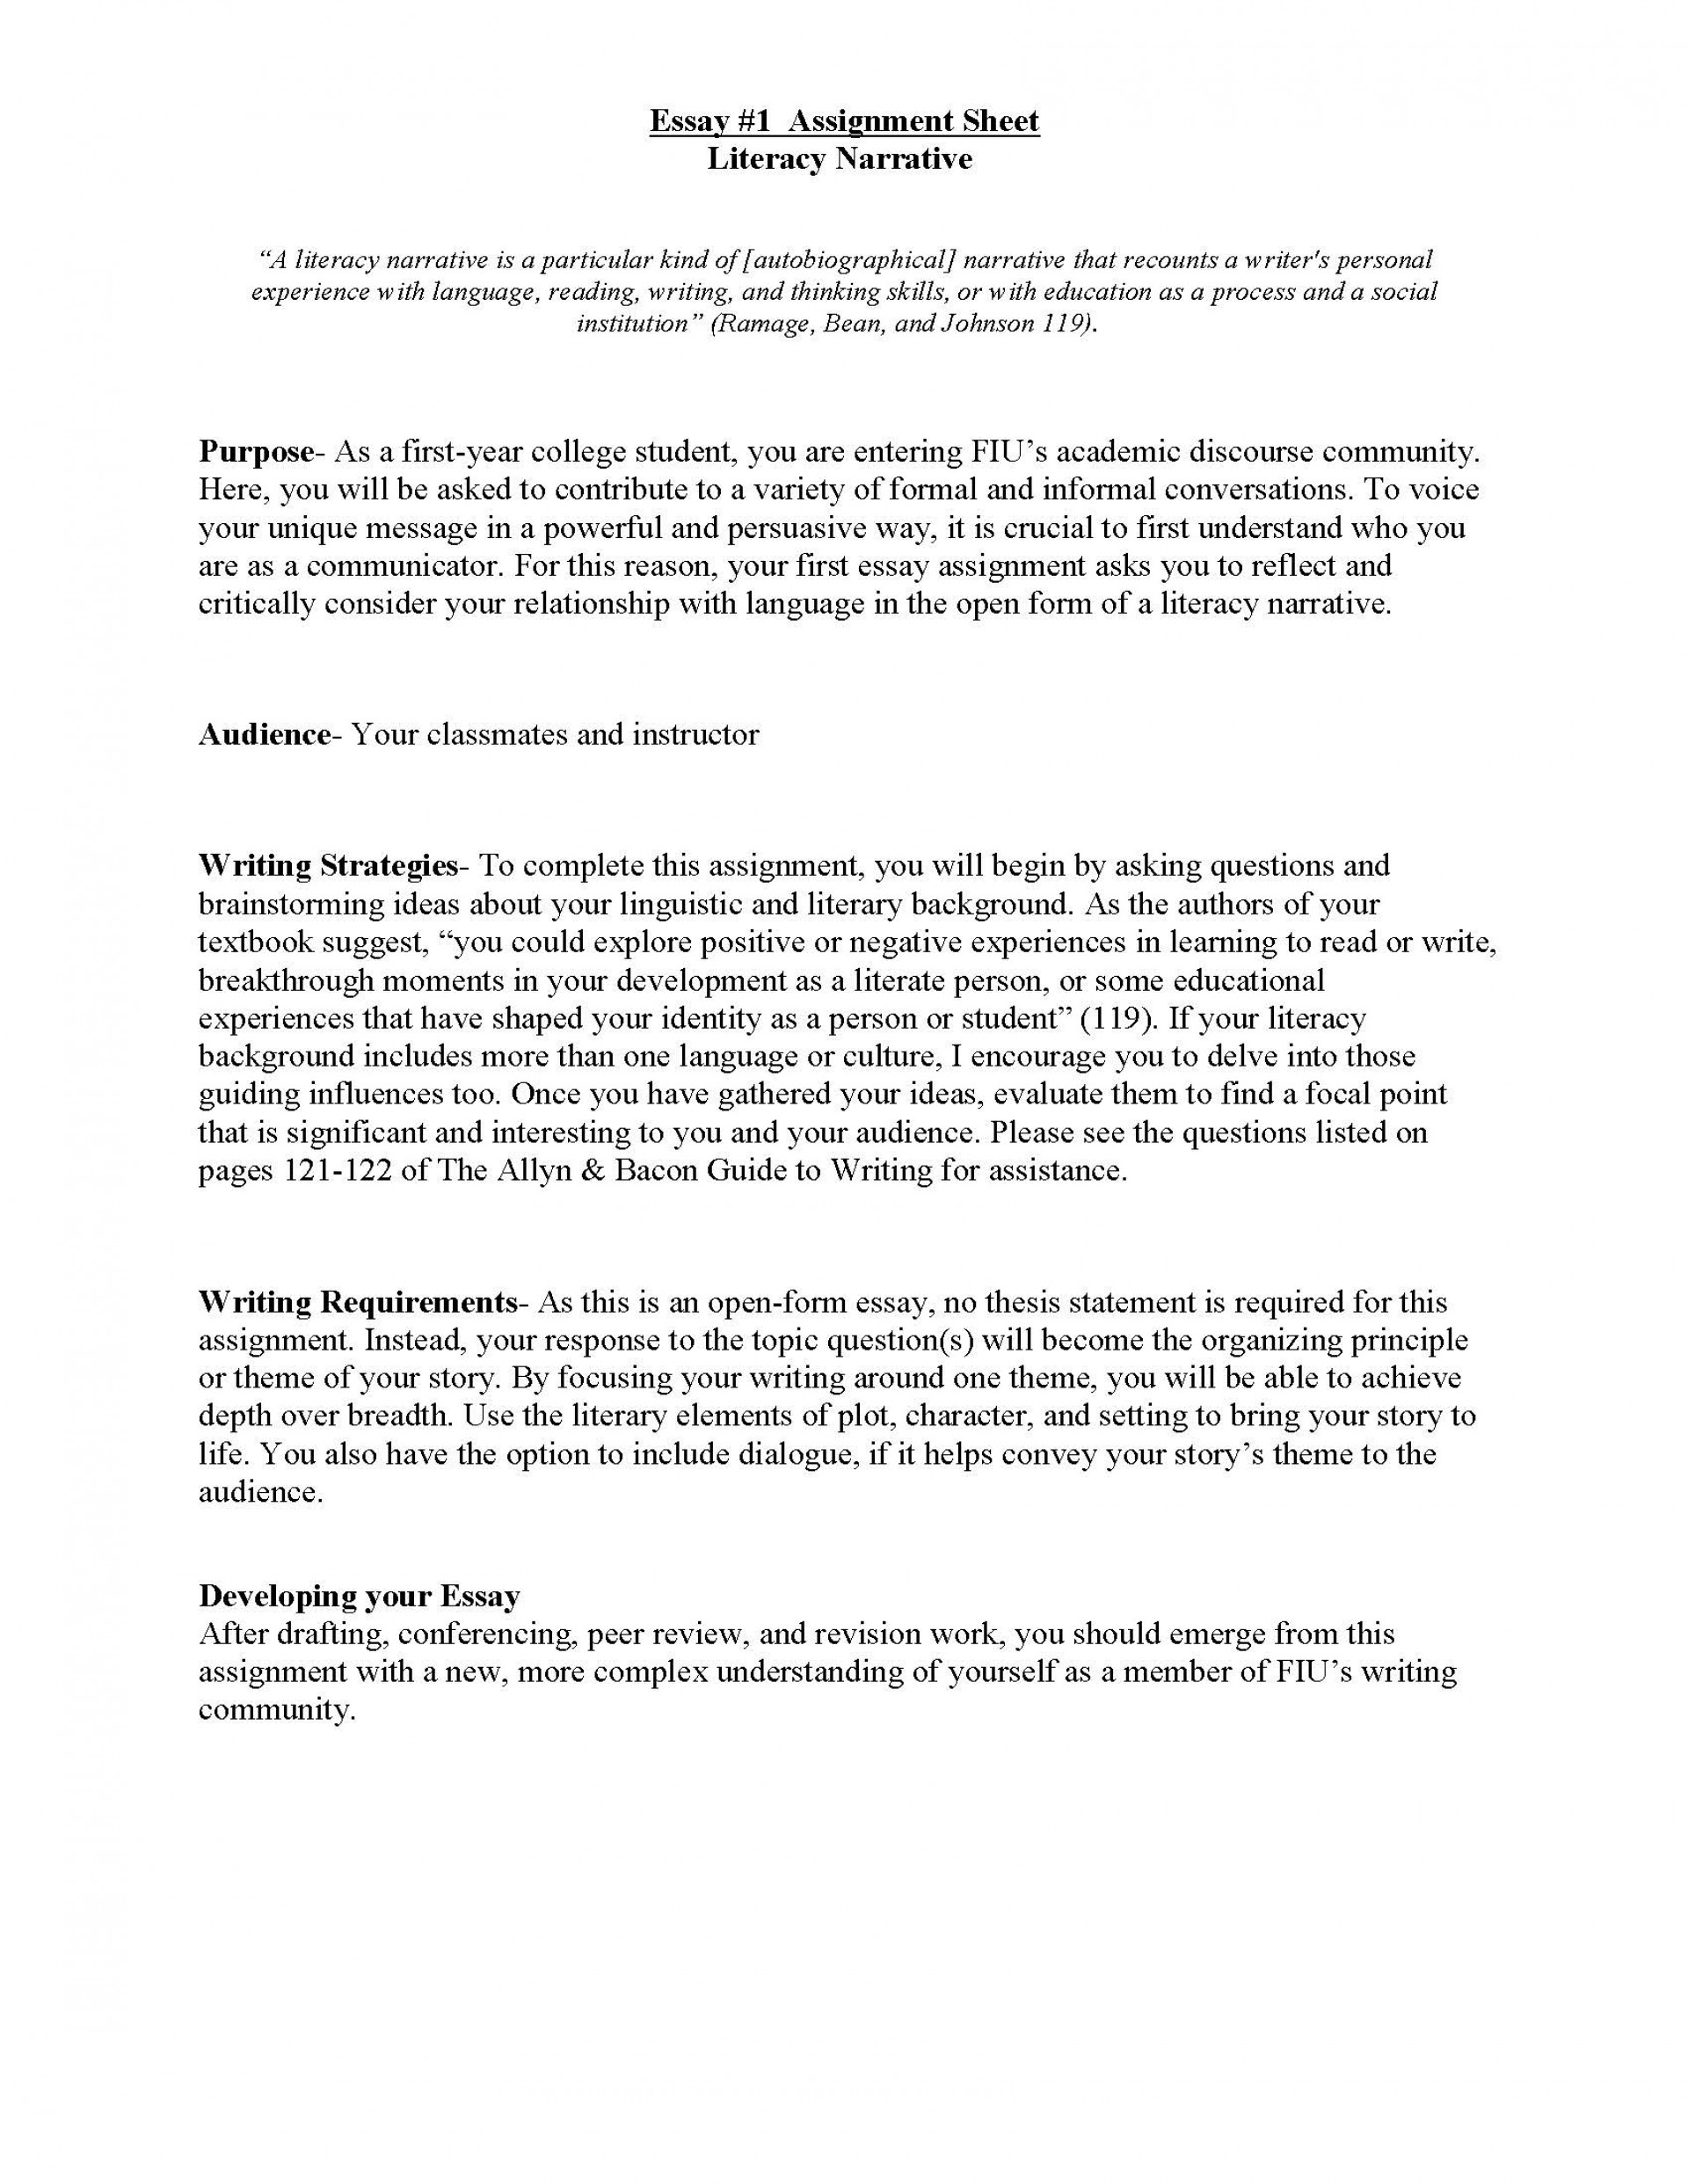 016 Personal Narrative Essay Example Literacy Unit Assignment Spring 2012 Page 1 Stirring Examples Free Topics For Grade 7 8th 1920